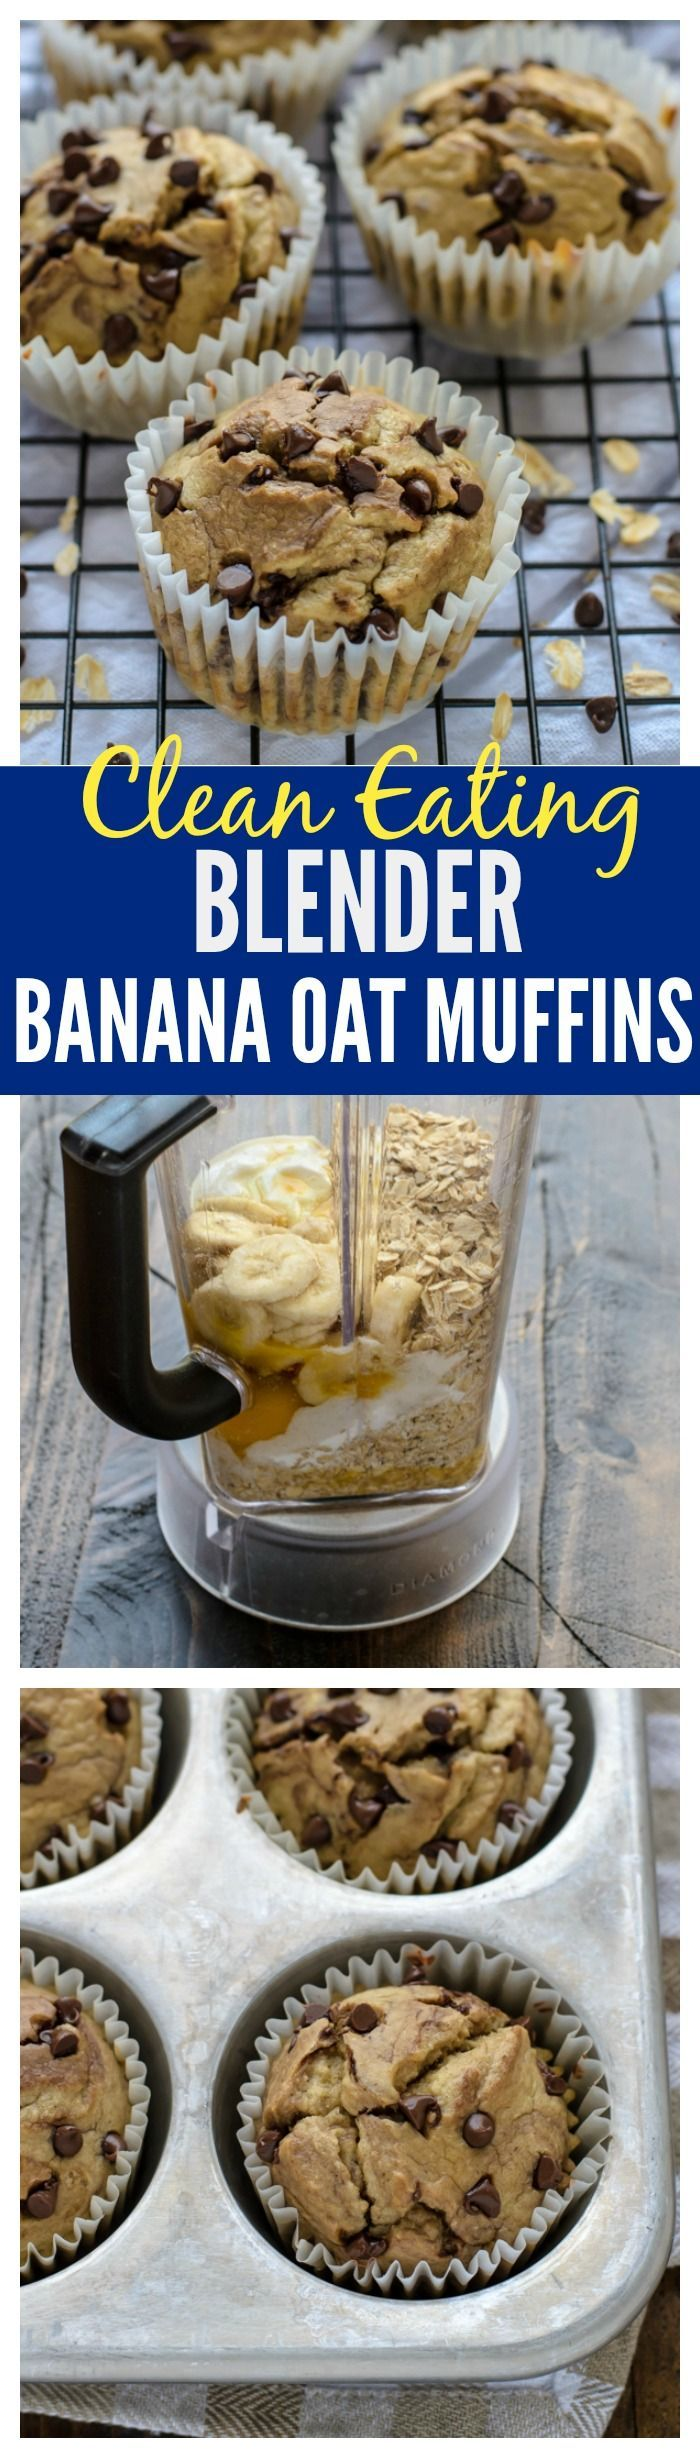 Oatmeal Muffins {Blender Recipe} Clean Eating Banana Oatmeal Muffins. NO butter, sugar, or oil, and they taste amazing. This is the best healthy banana muffin recipe. Kids love them and they are gluten free!Clean Eating Banana Oatmeal Muffins. NO butter, sugar, or oil, and they taste amazing. This is the best healthy banana muffin recipe. Kids love them and they ar...